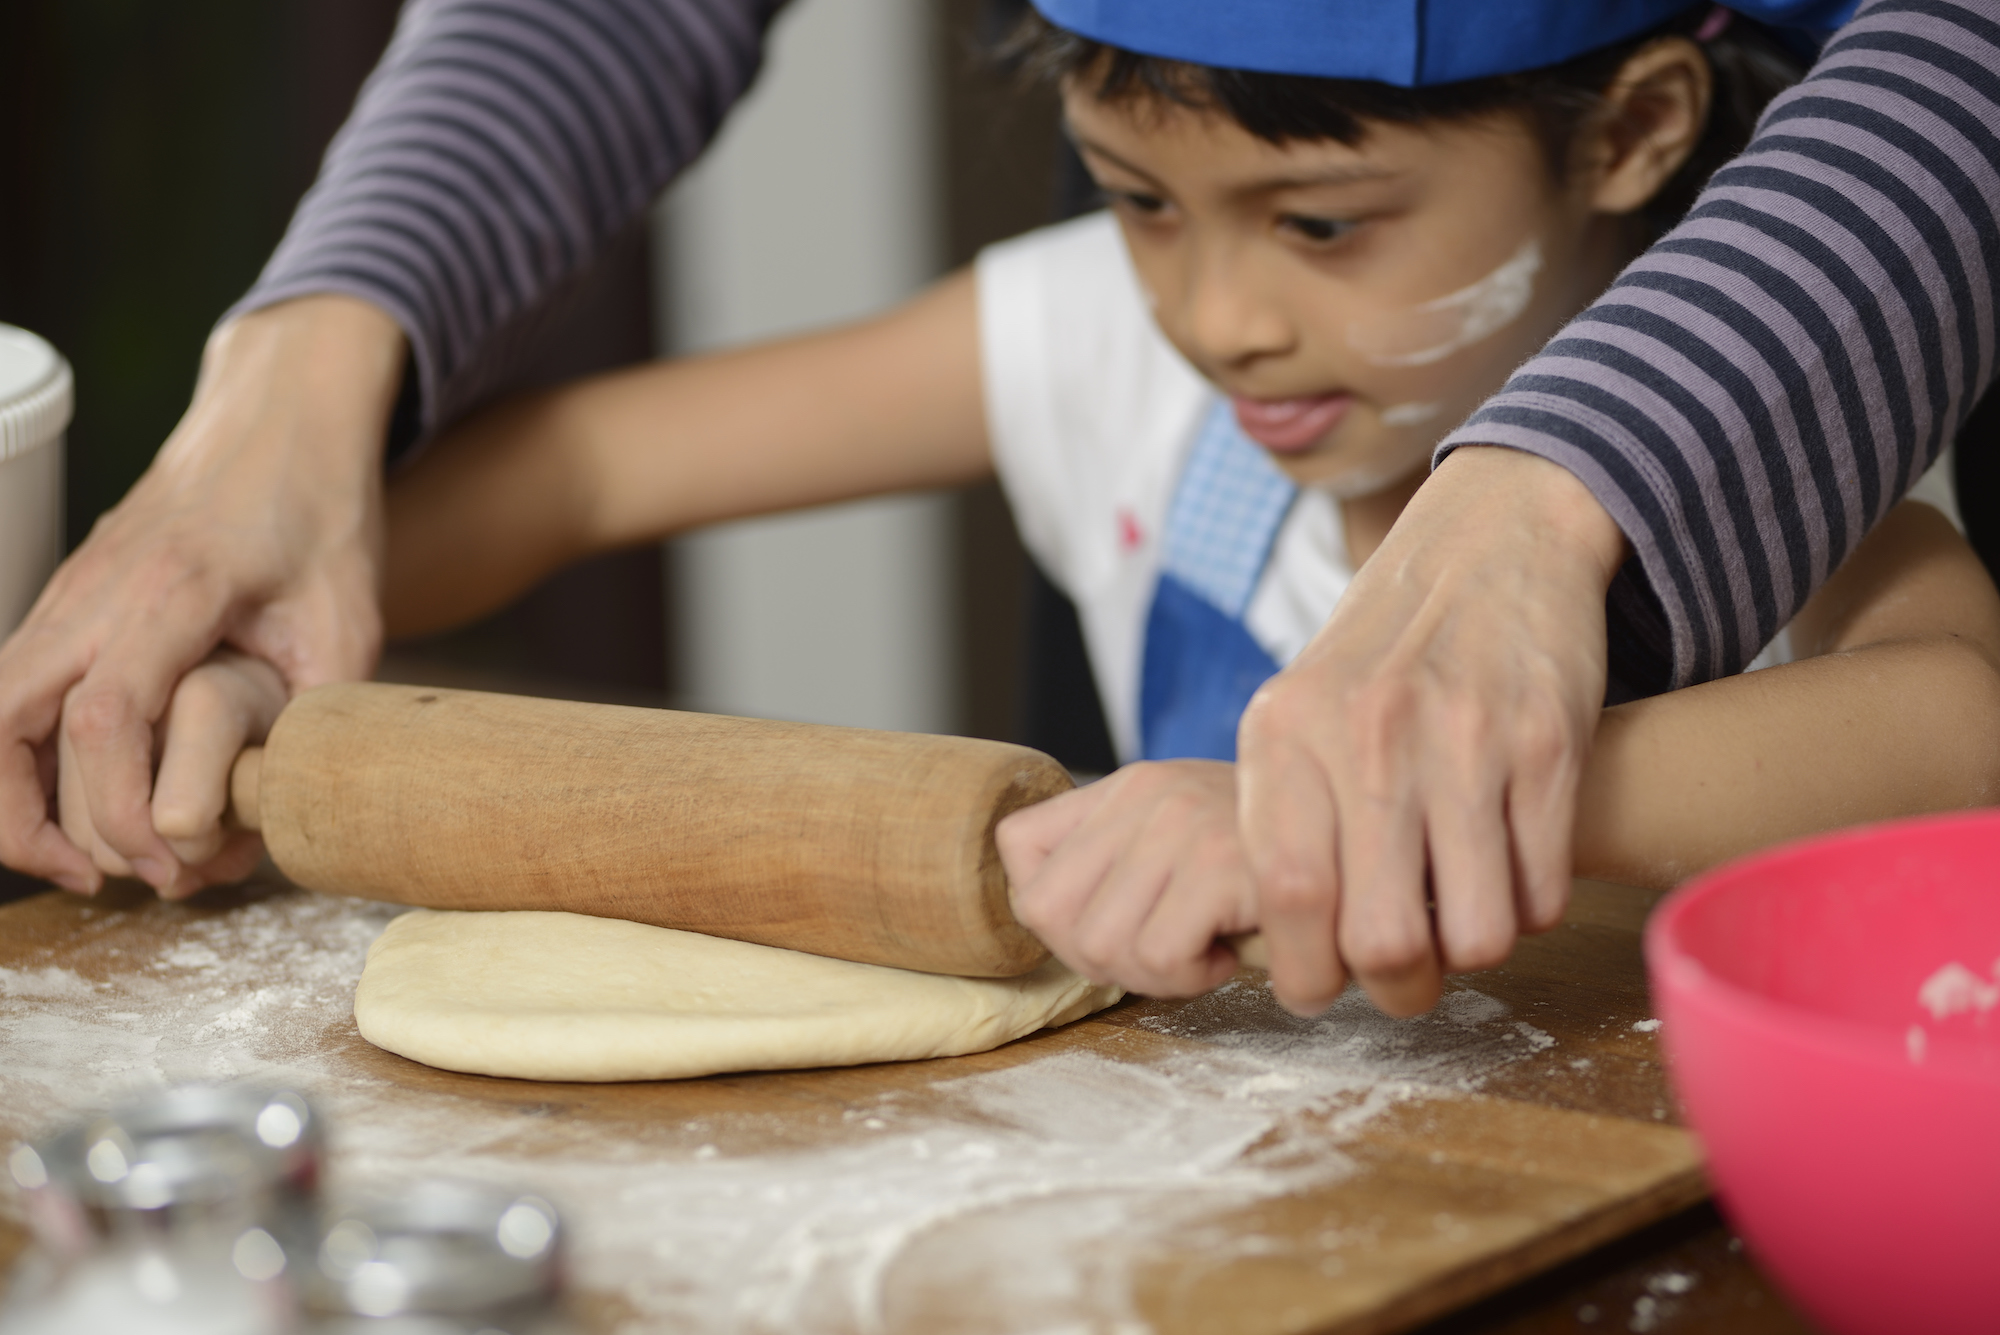 We help neglected children build confidence by learning to cook. We are a Kent charity for children's mental health.